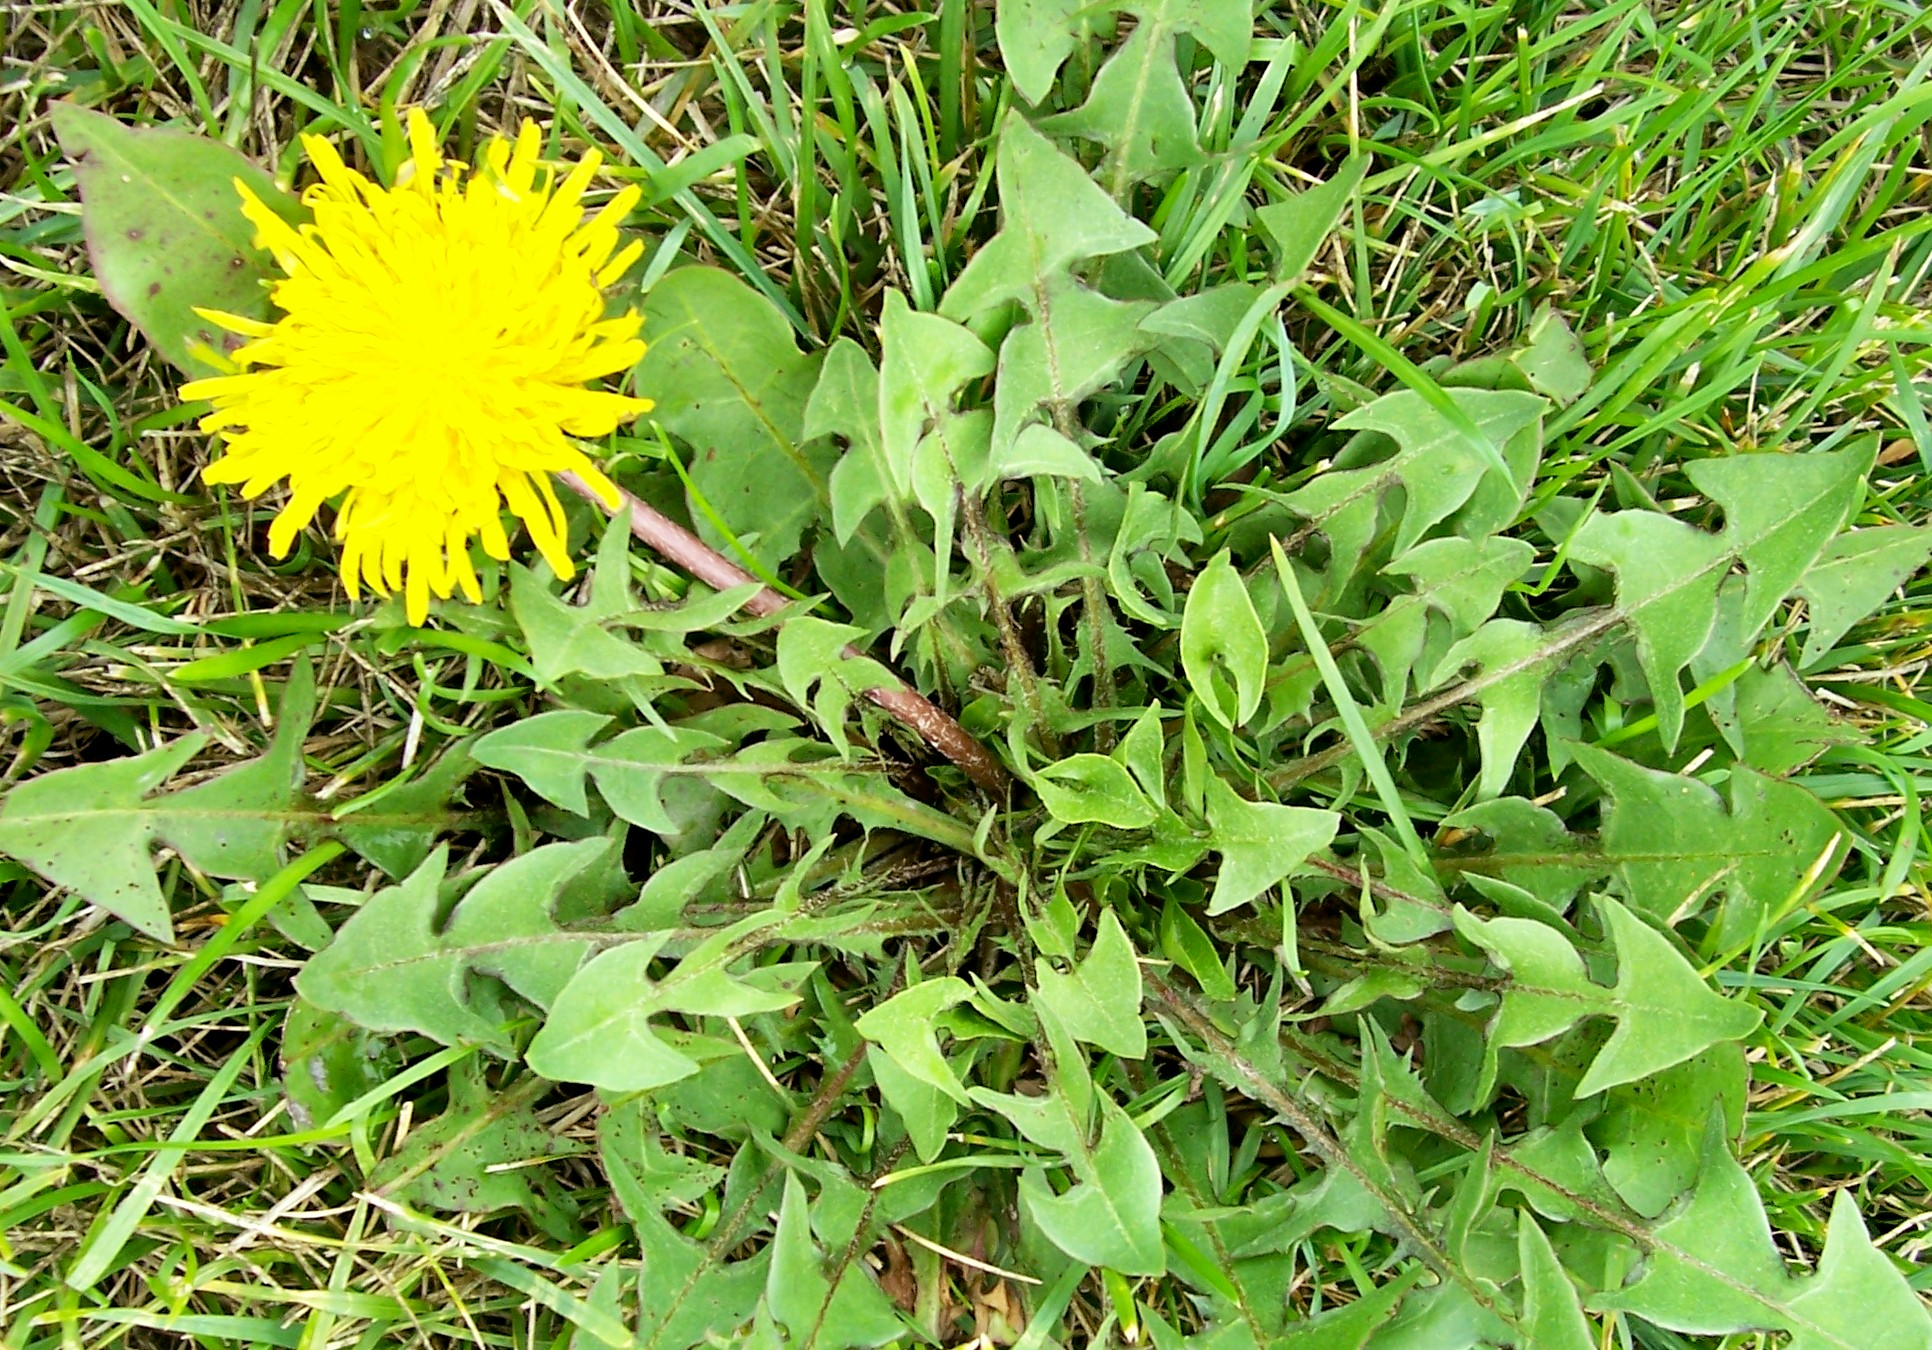 How To Rid Lawn Of Weeds Garden Guides